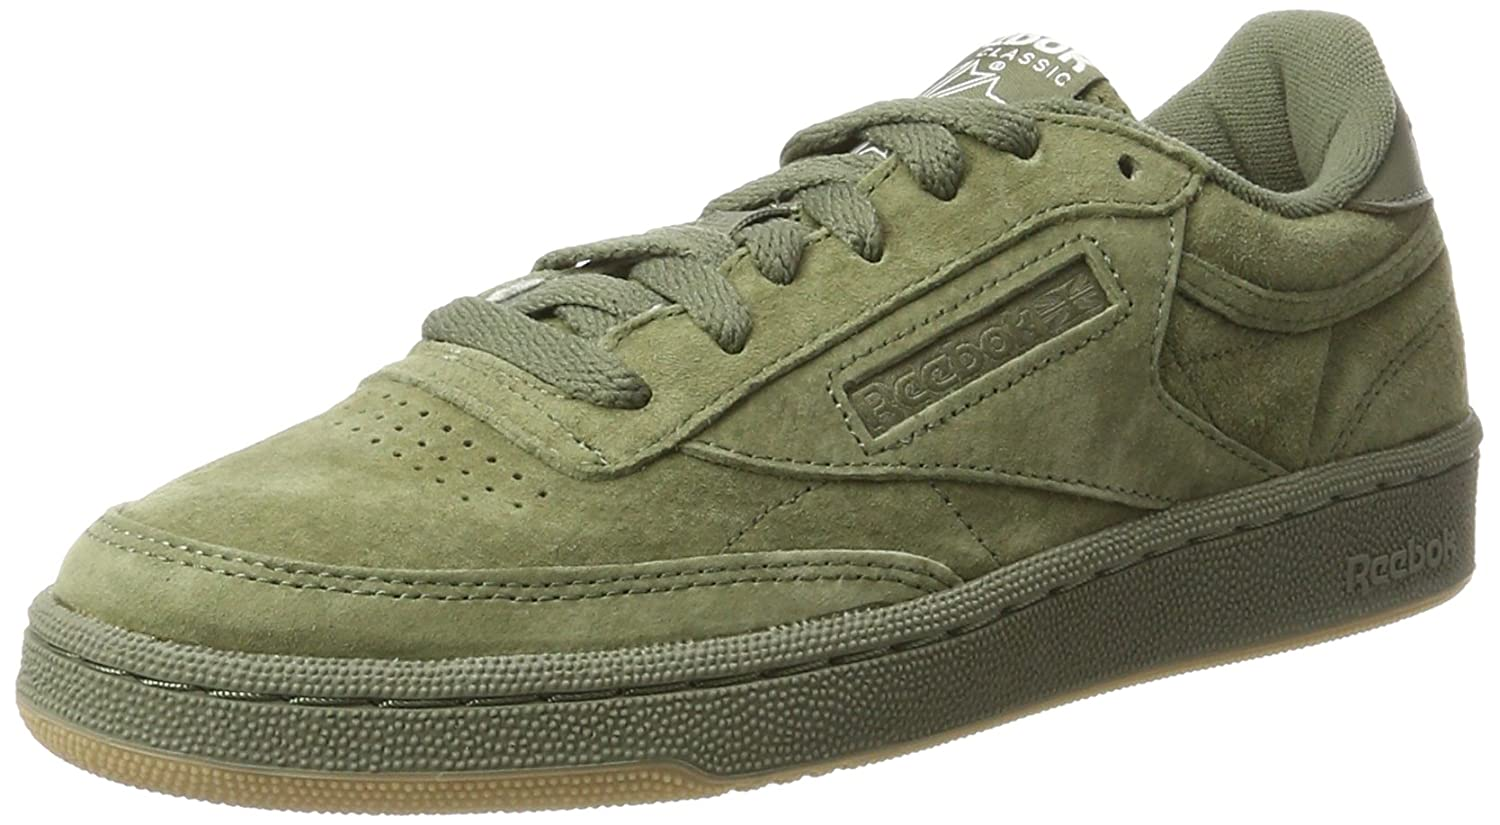 d120c1319299 Reebok Men s Club C 85 Sg Hunter Green White-Gum Leather Tennis Shoes - 11  UK India (45.5 EU) (12 US)  Buy Online at Low Prices in India - Amazon.in